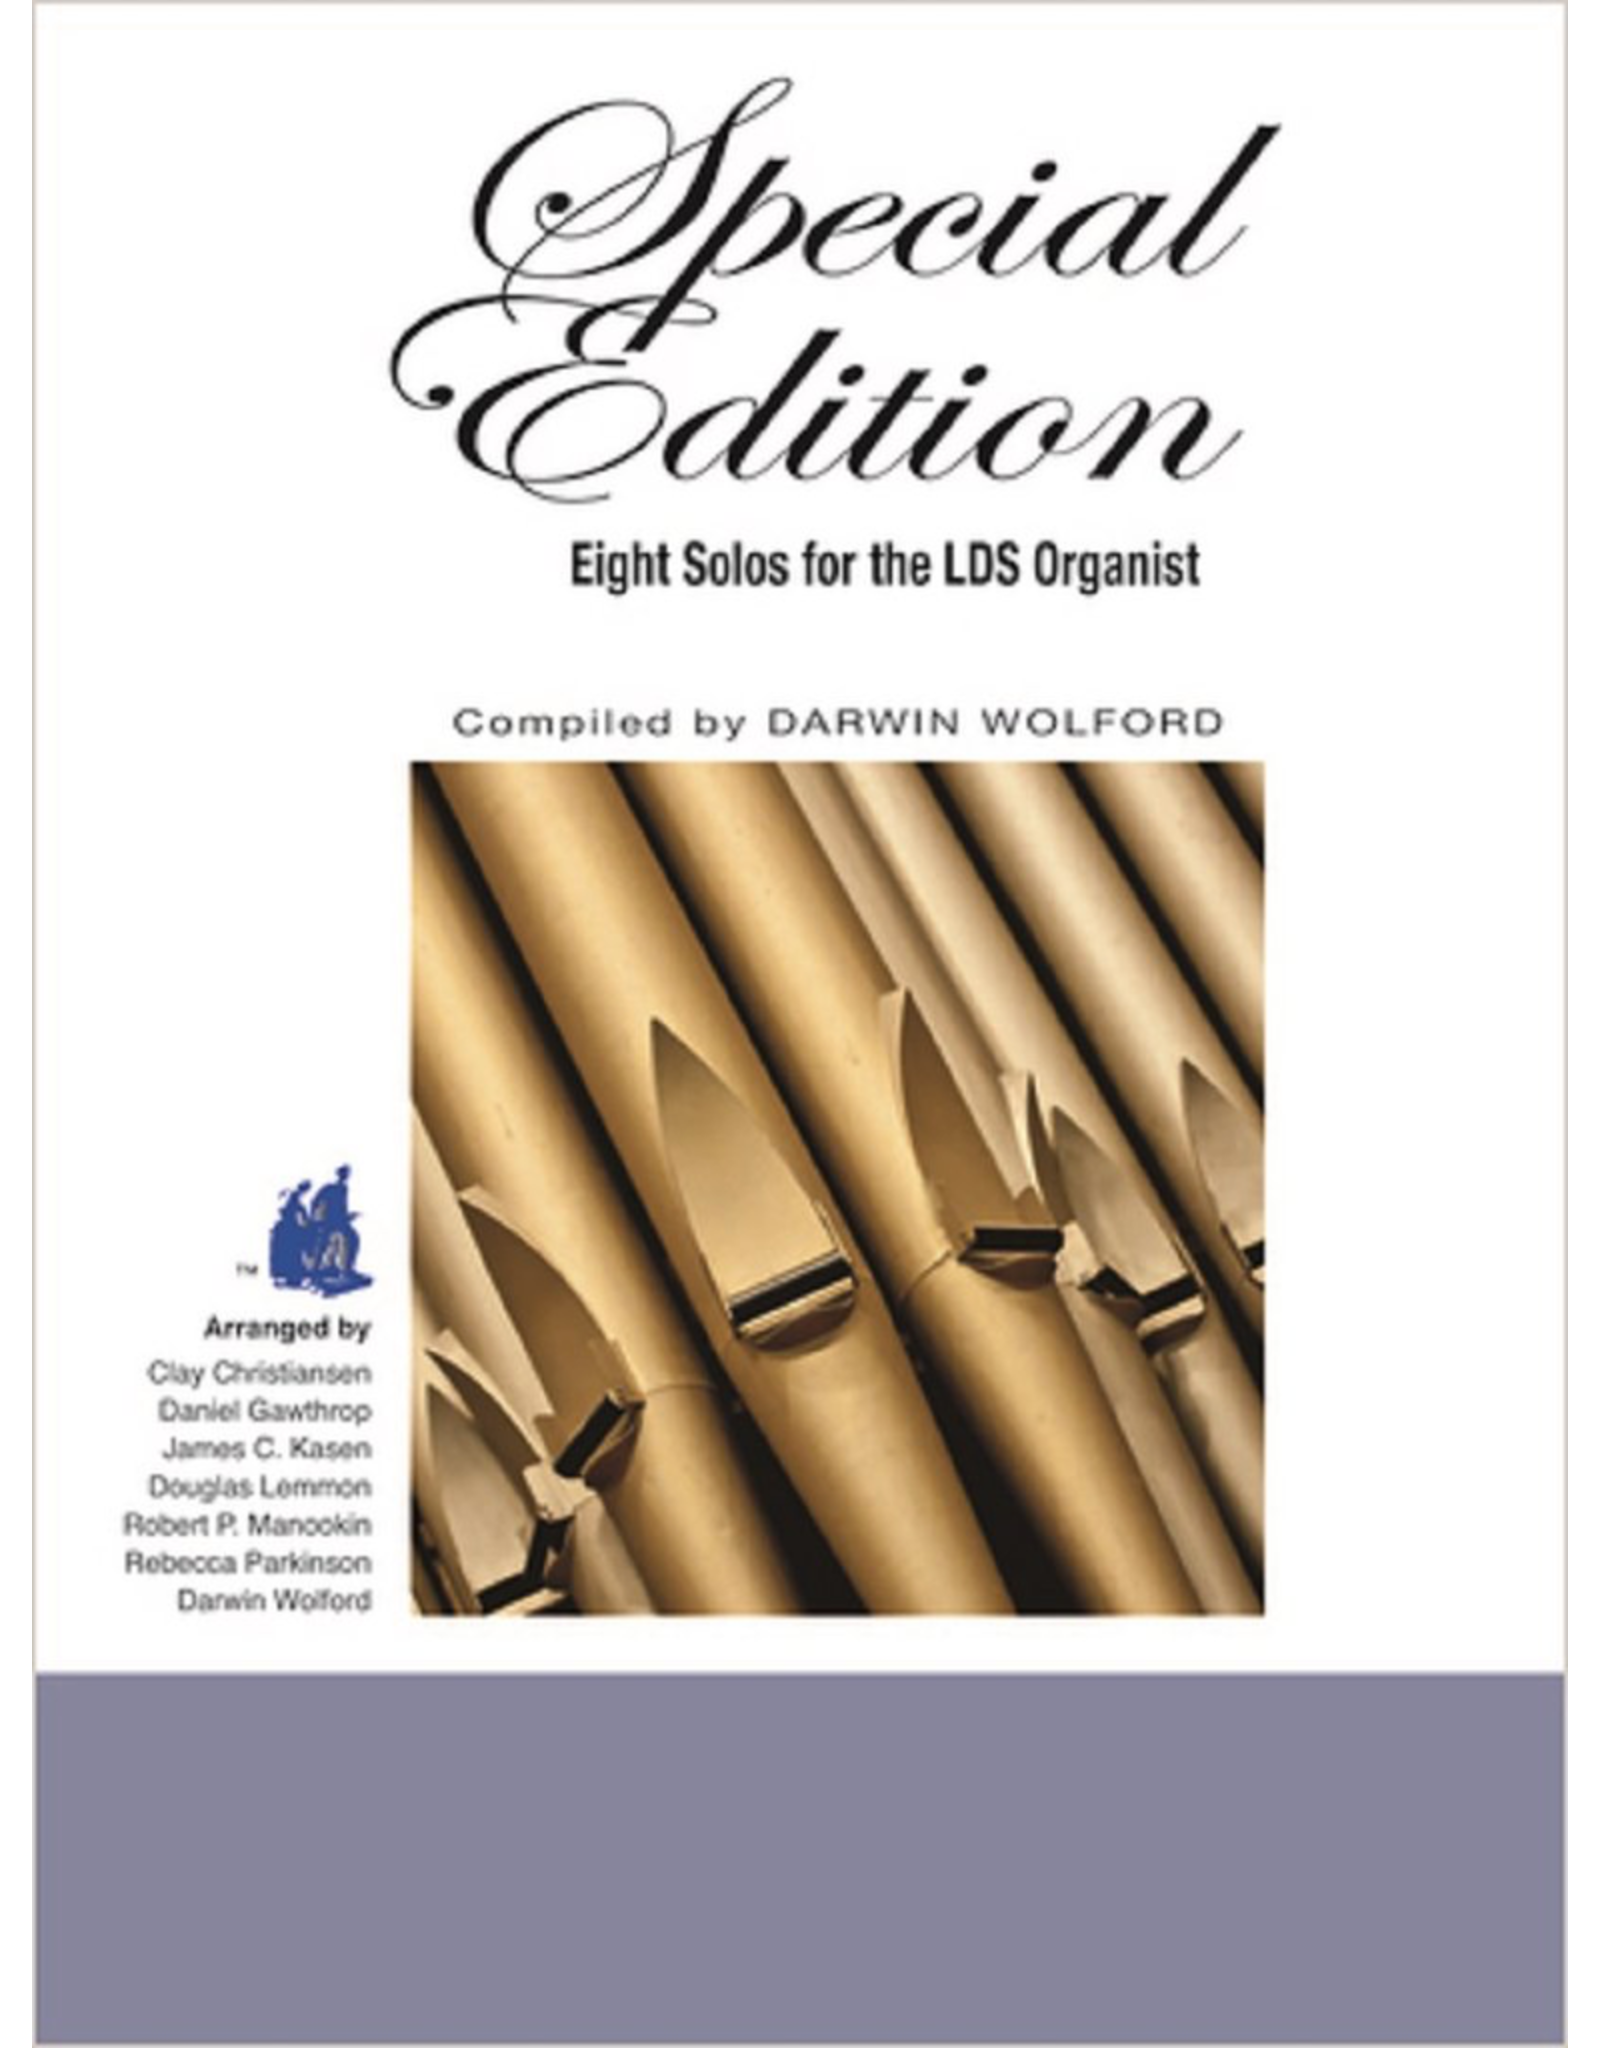 Jackman Music Special Edition - Eight Solos for the LDS Organist